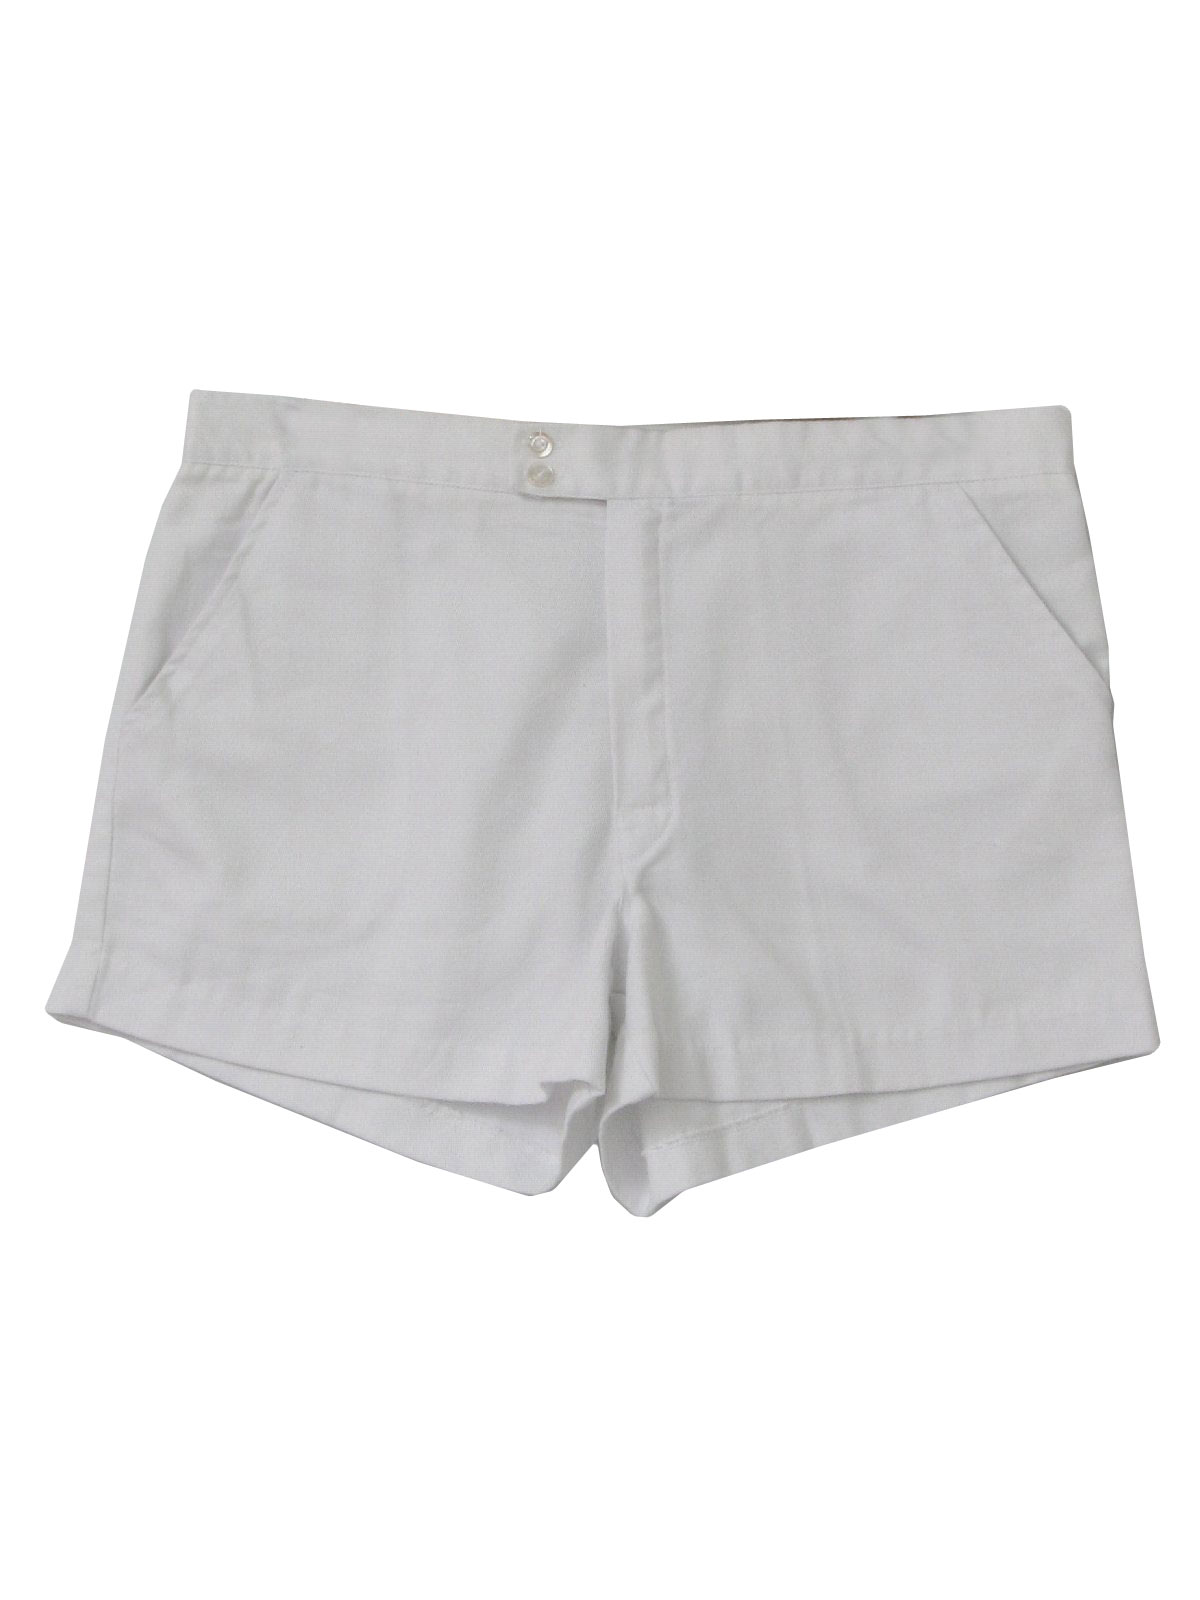 Vintage 70s Shorts: Late70s -Catalina Tennis Collection- Mens ...